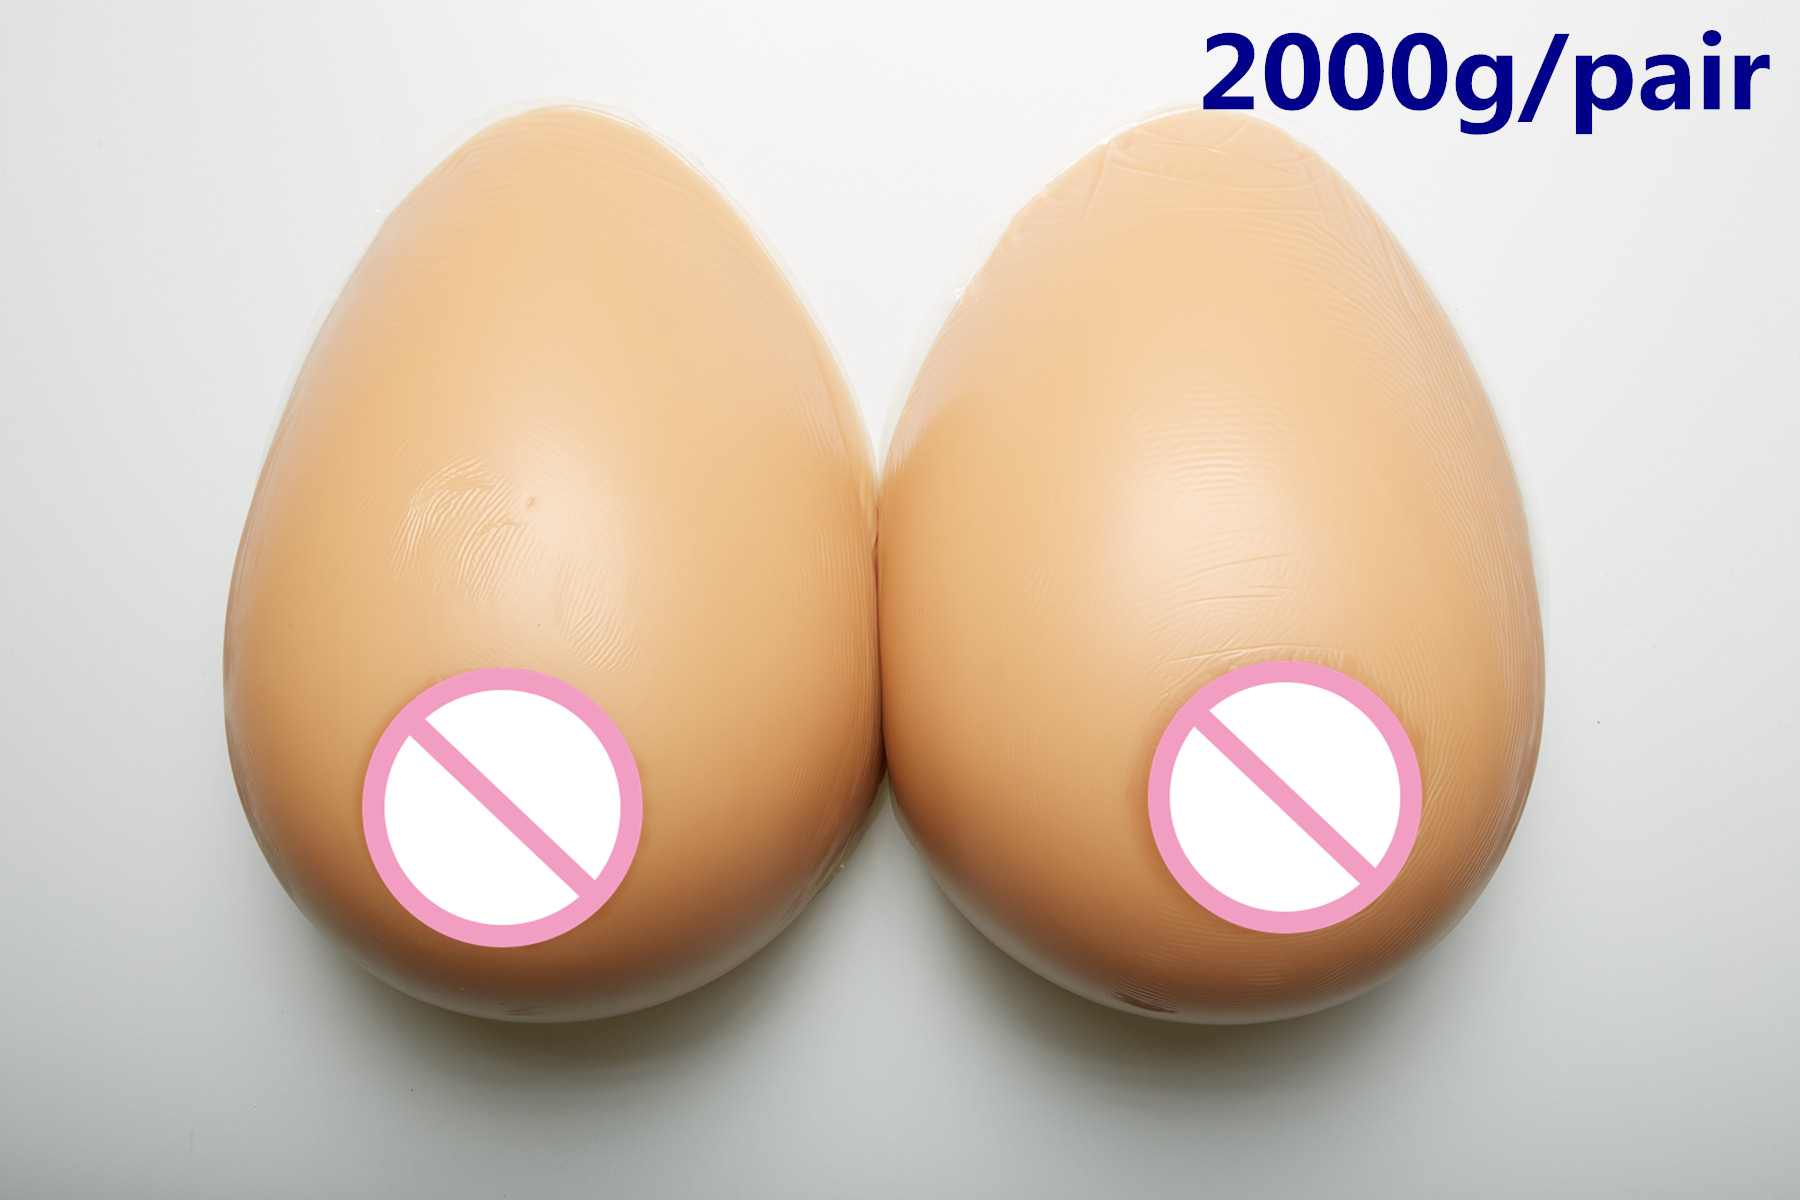 Fake Boob 2000g/pair Brown Silicone Breast Forms Breast Prosthesis Crossdresser Drag Queen Shemale Transgender False Breasts false breast artificial breasts drag queen silicone breast forms shemale fake boob for transgender and crossdressing 1200g